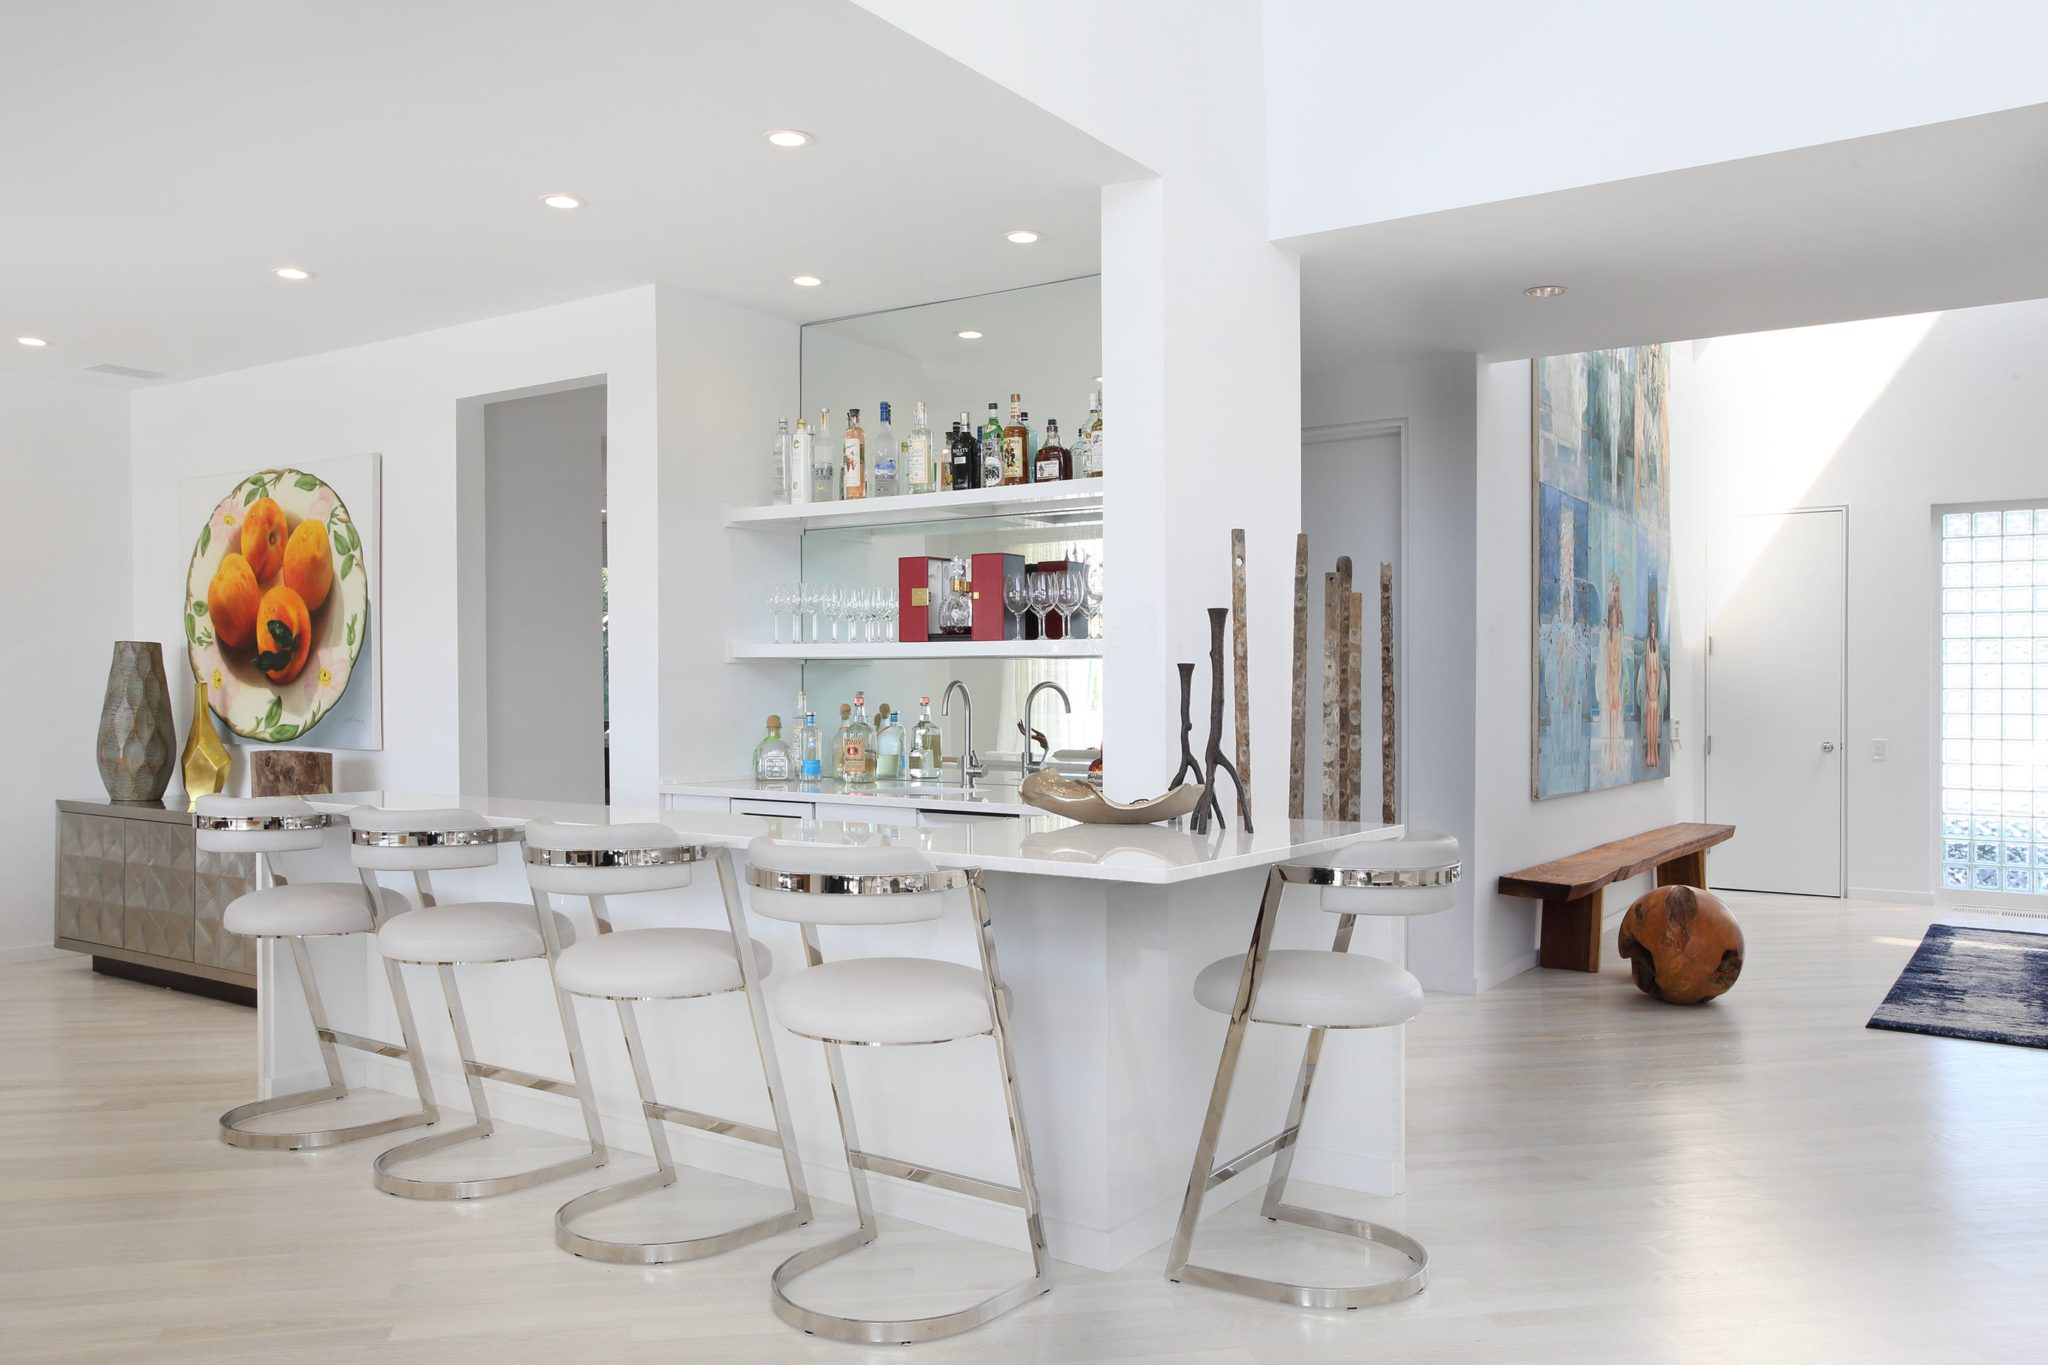 """Blend the Design with the Rest of the Home. """"Use materials that are appropriate to your color scheme and style, something that will enhance the rest of the room,"""" says Patricia Bonis. """"I like to include an accent material on the inset recessed panels — likea leather or fabric, mirror, or some type of stone, marble, or texture to enhance the surface.""""   The soft neutral color palettein this space was inspired by the home's surrounding views of the ocean and pool."""